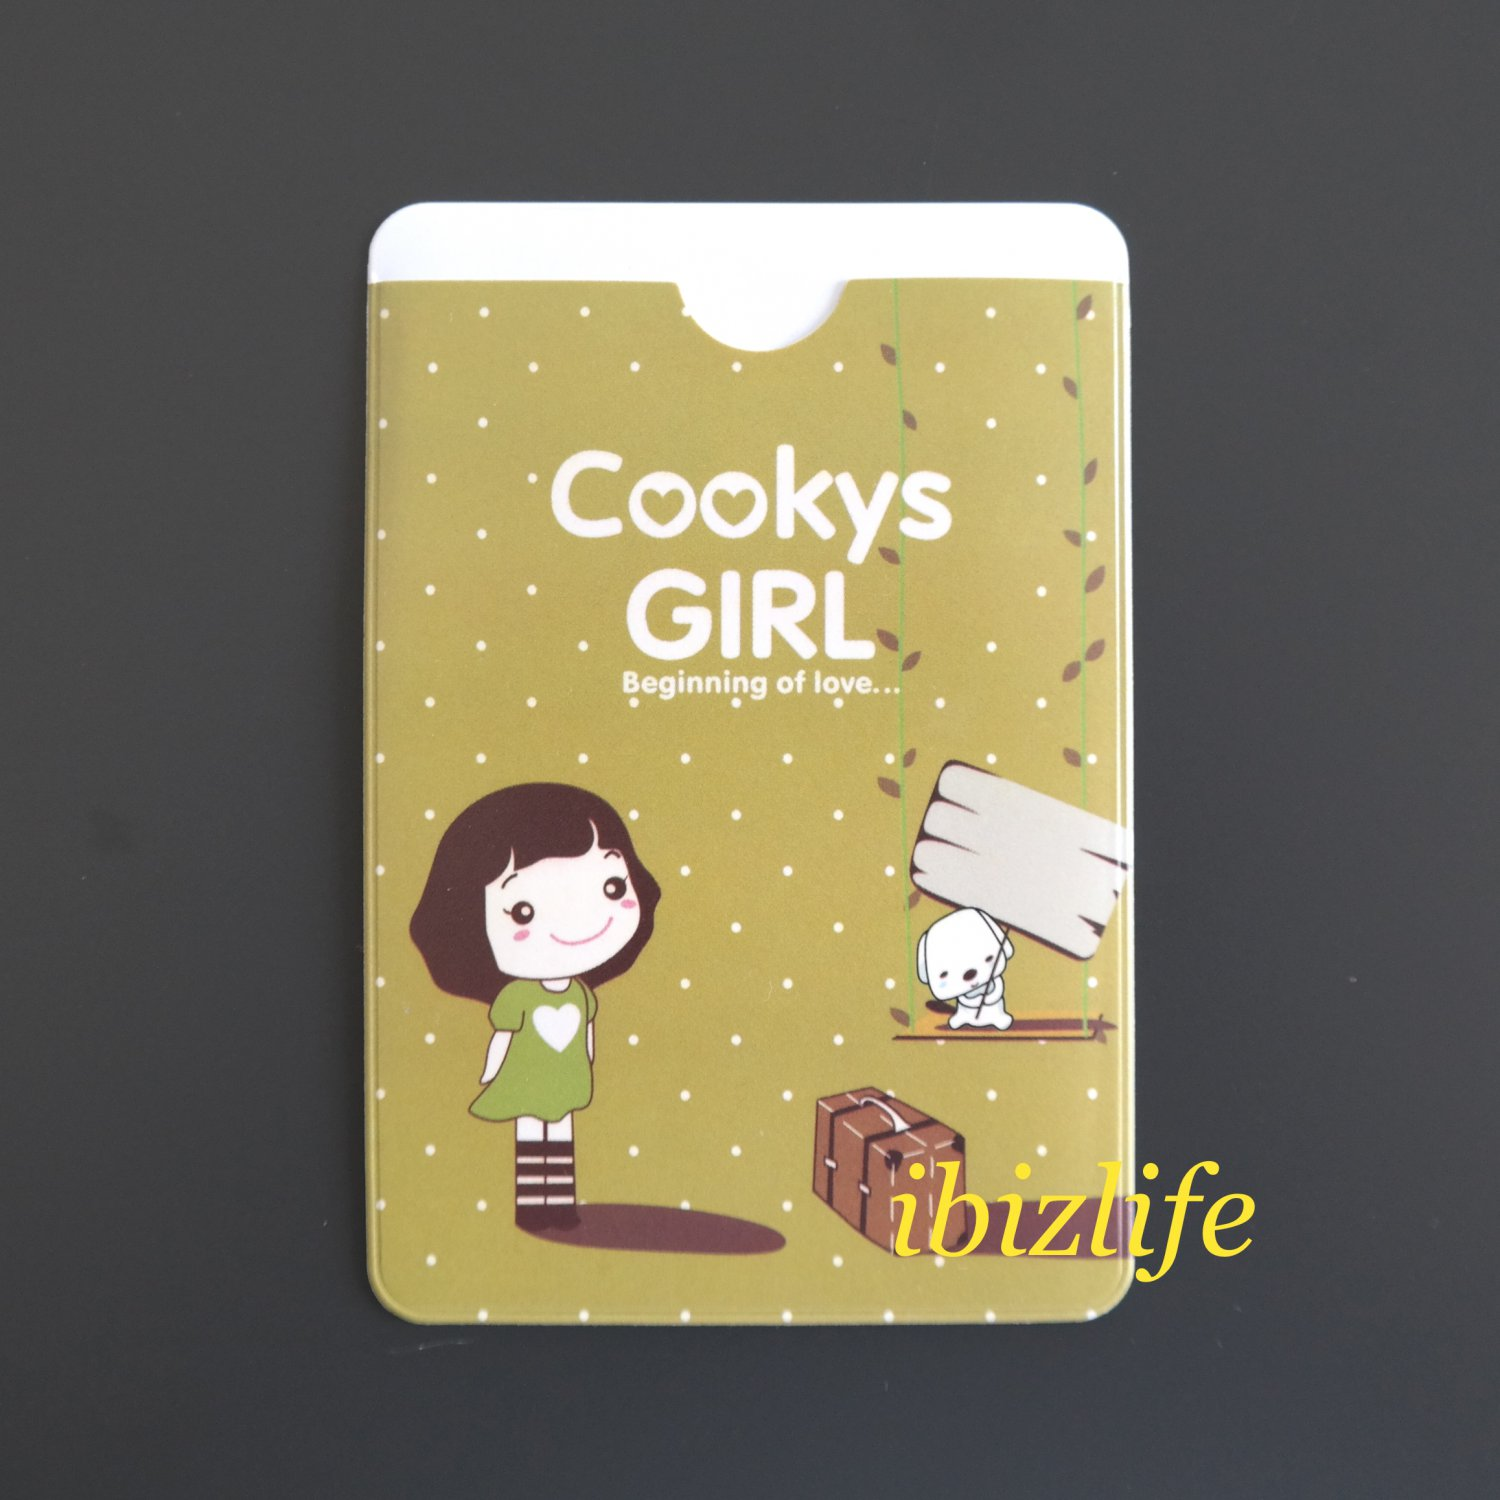 Fashion 2-sides pocket for cards with Cookys Girl having a trip (FP12)